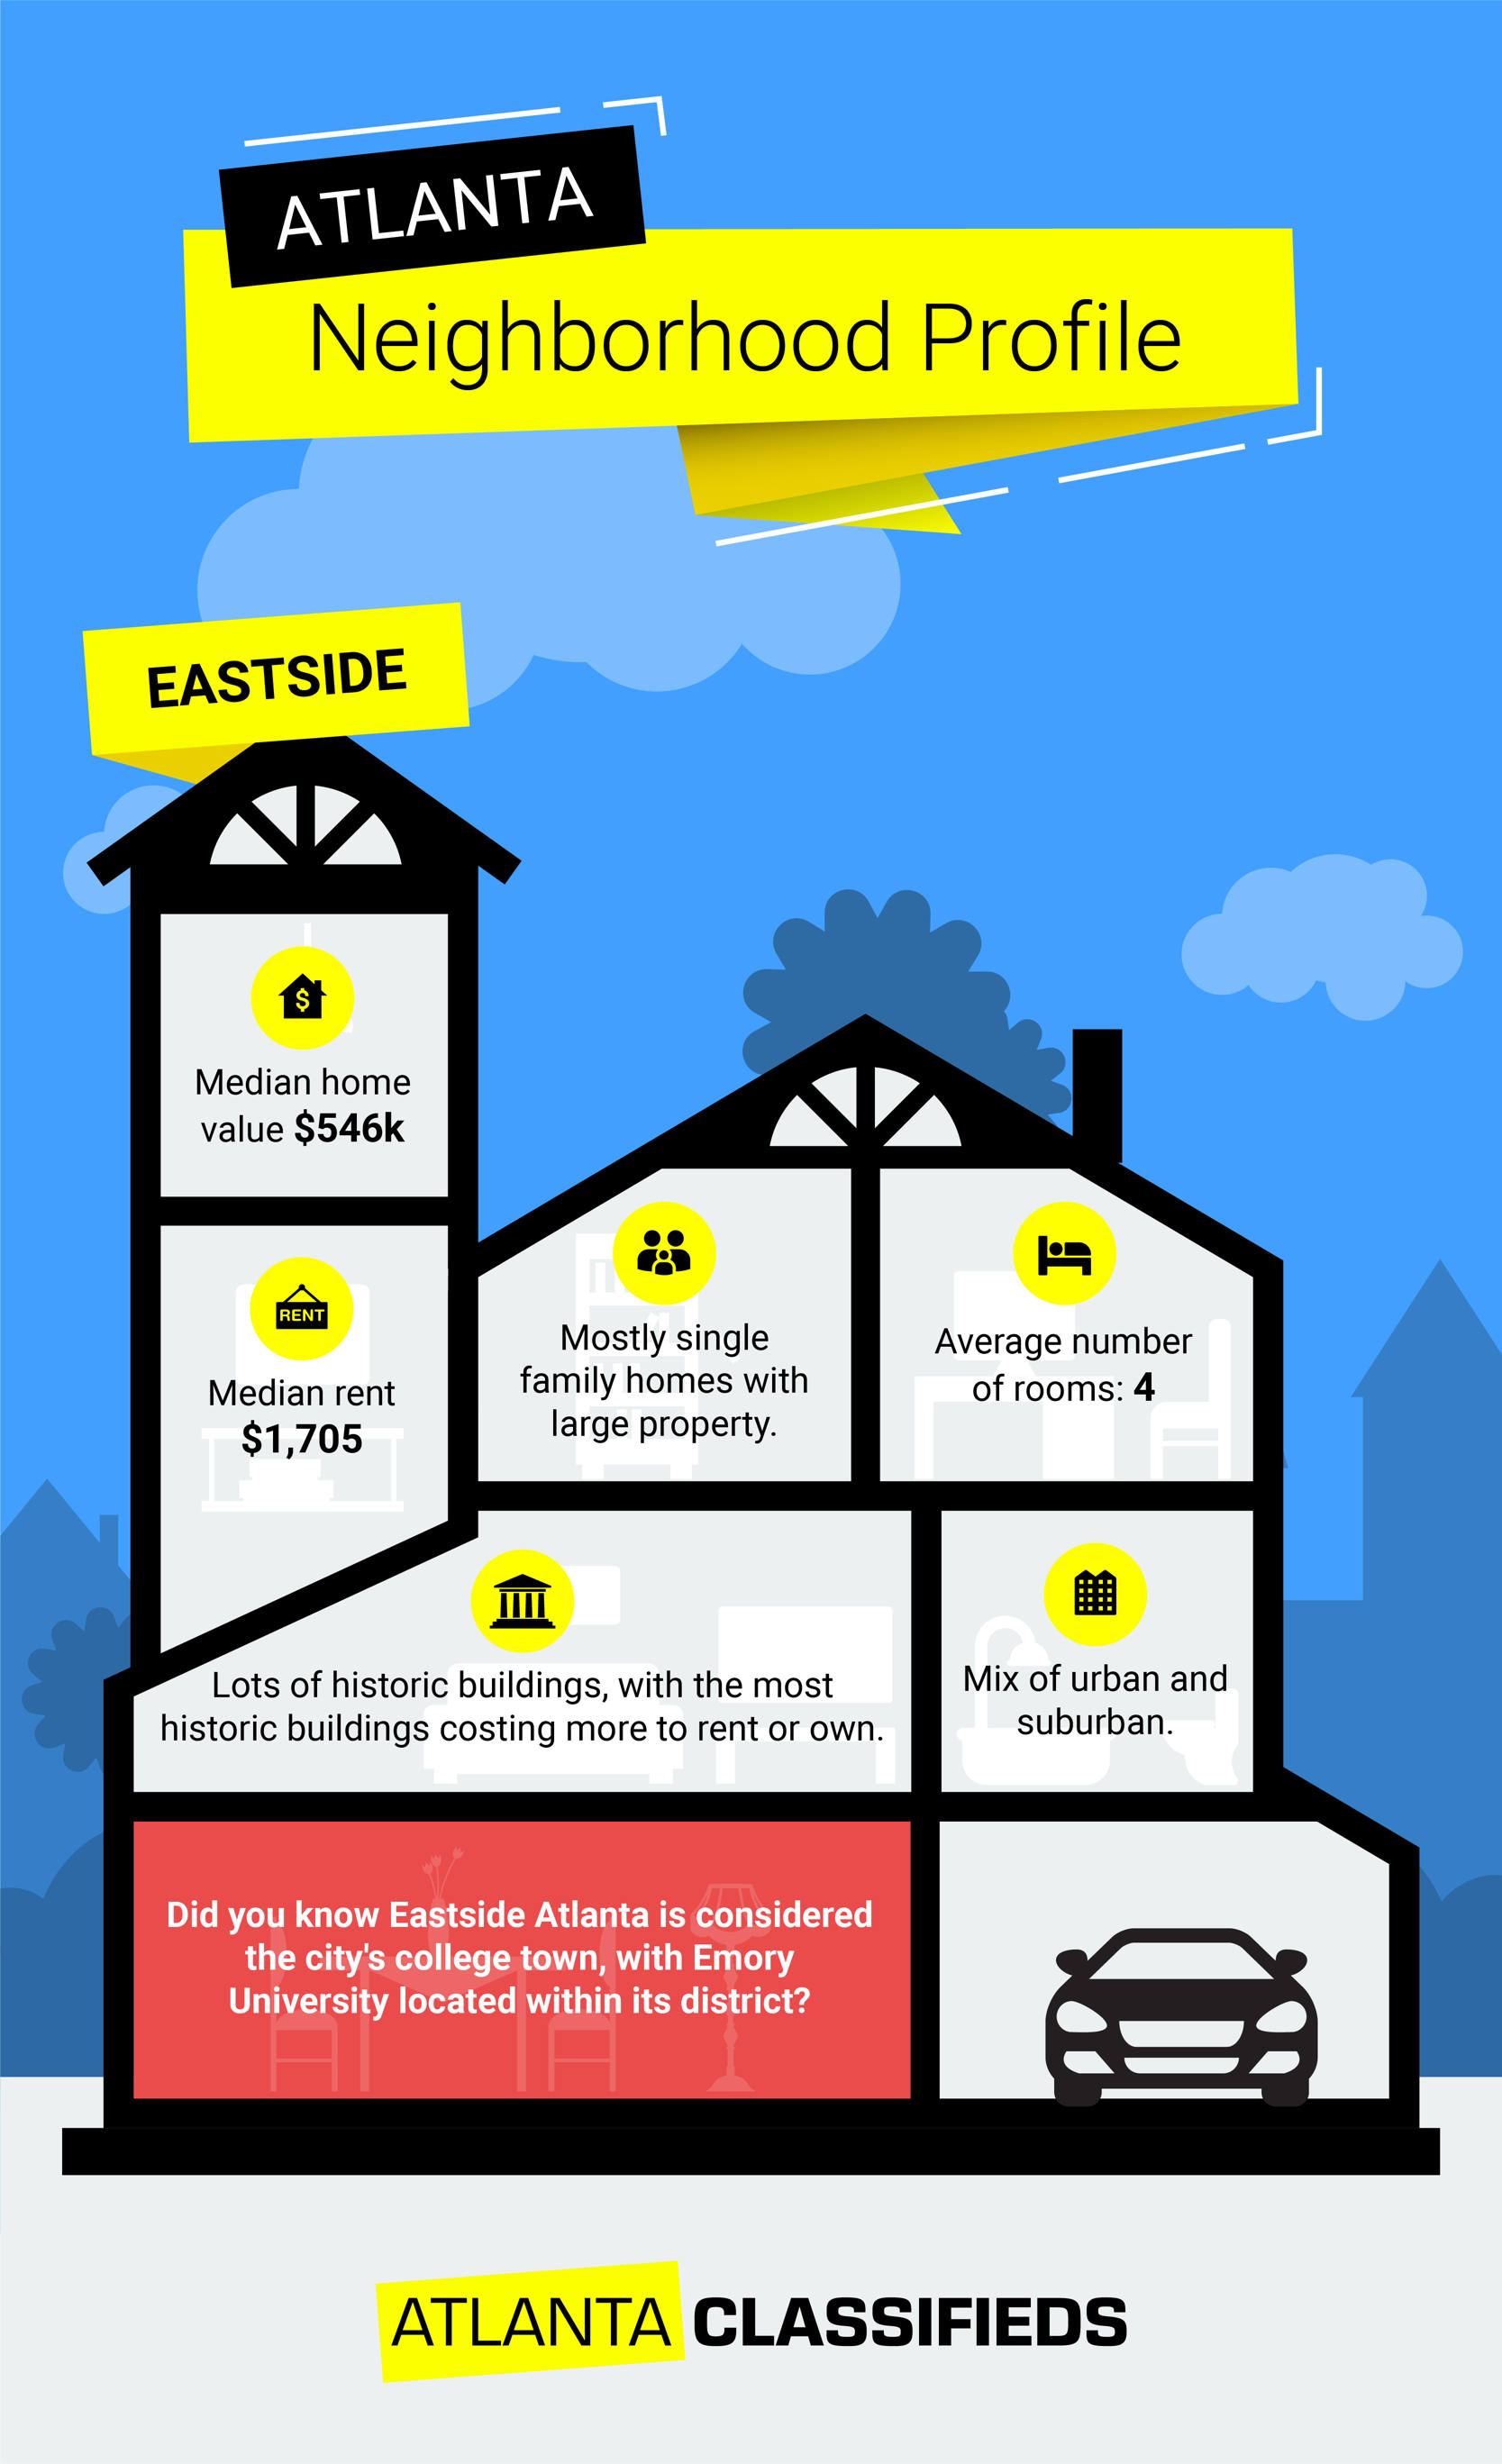 Tips for renting an apartment or buying a home in East Atlanta, GA.